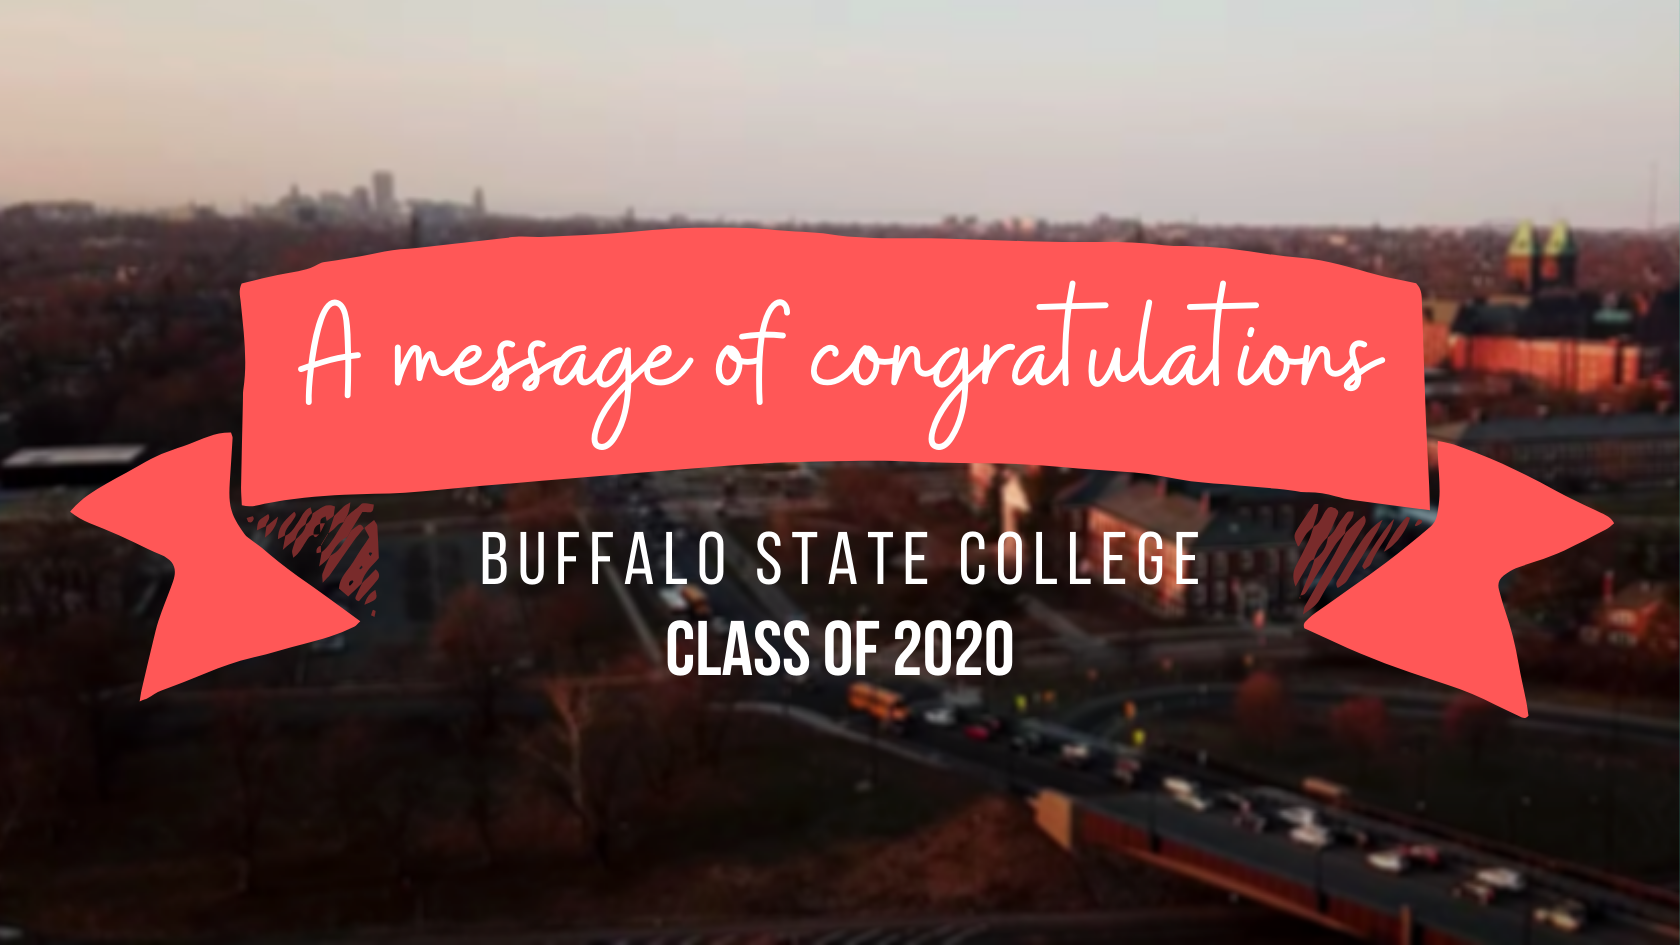 a message of congratulations buffalo state college class of 2020